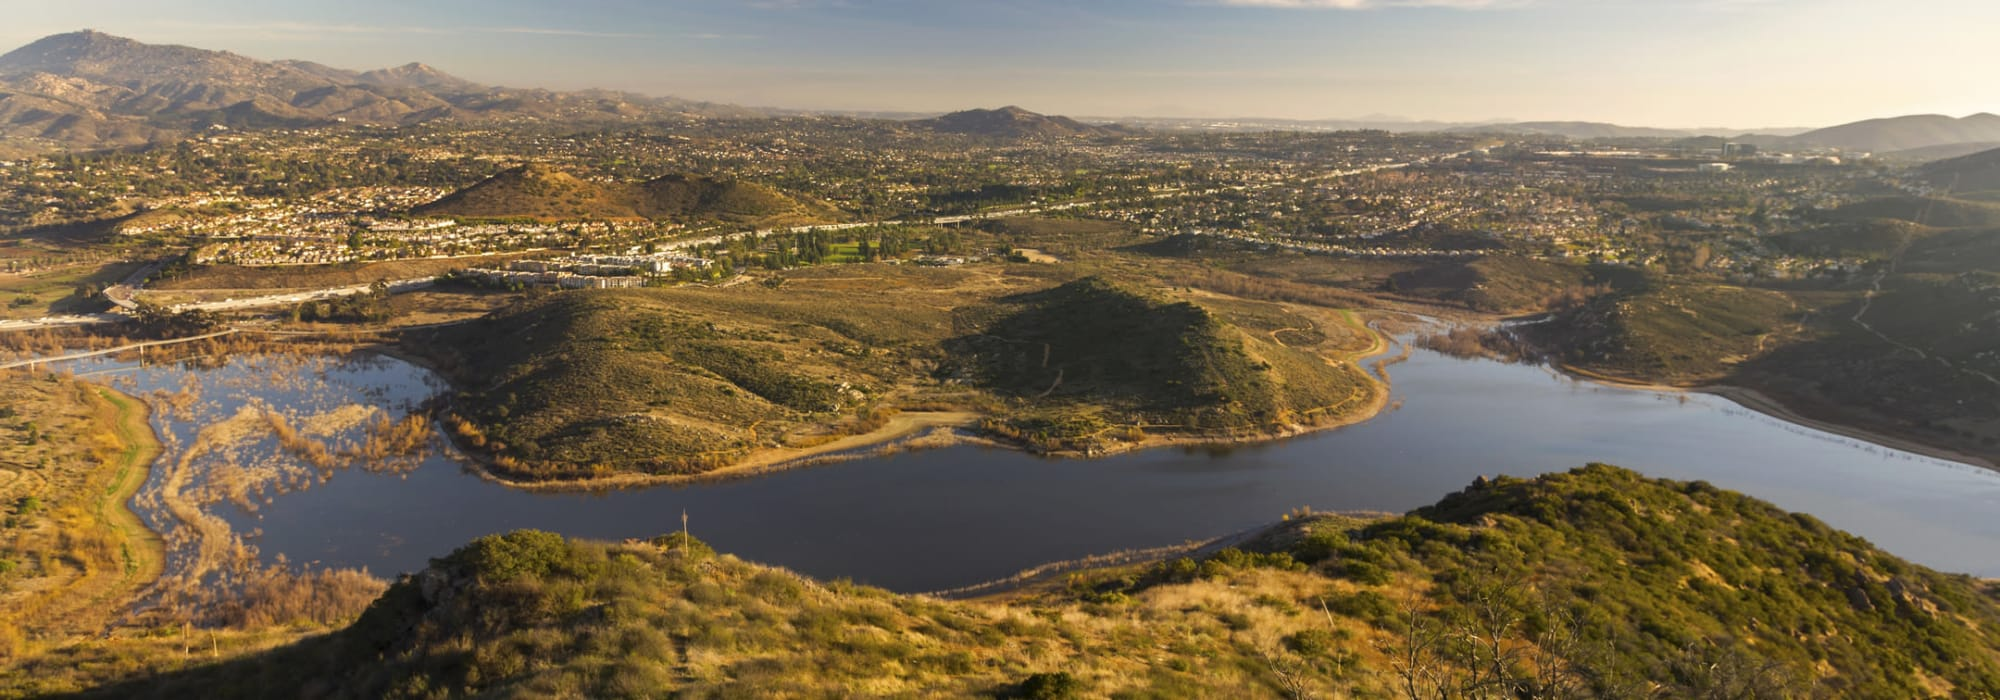 A view of Lake Hodges near North County Self Storage in Escondido, California